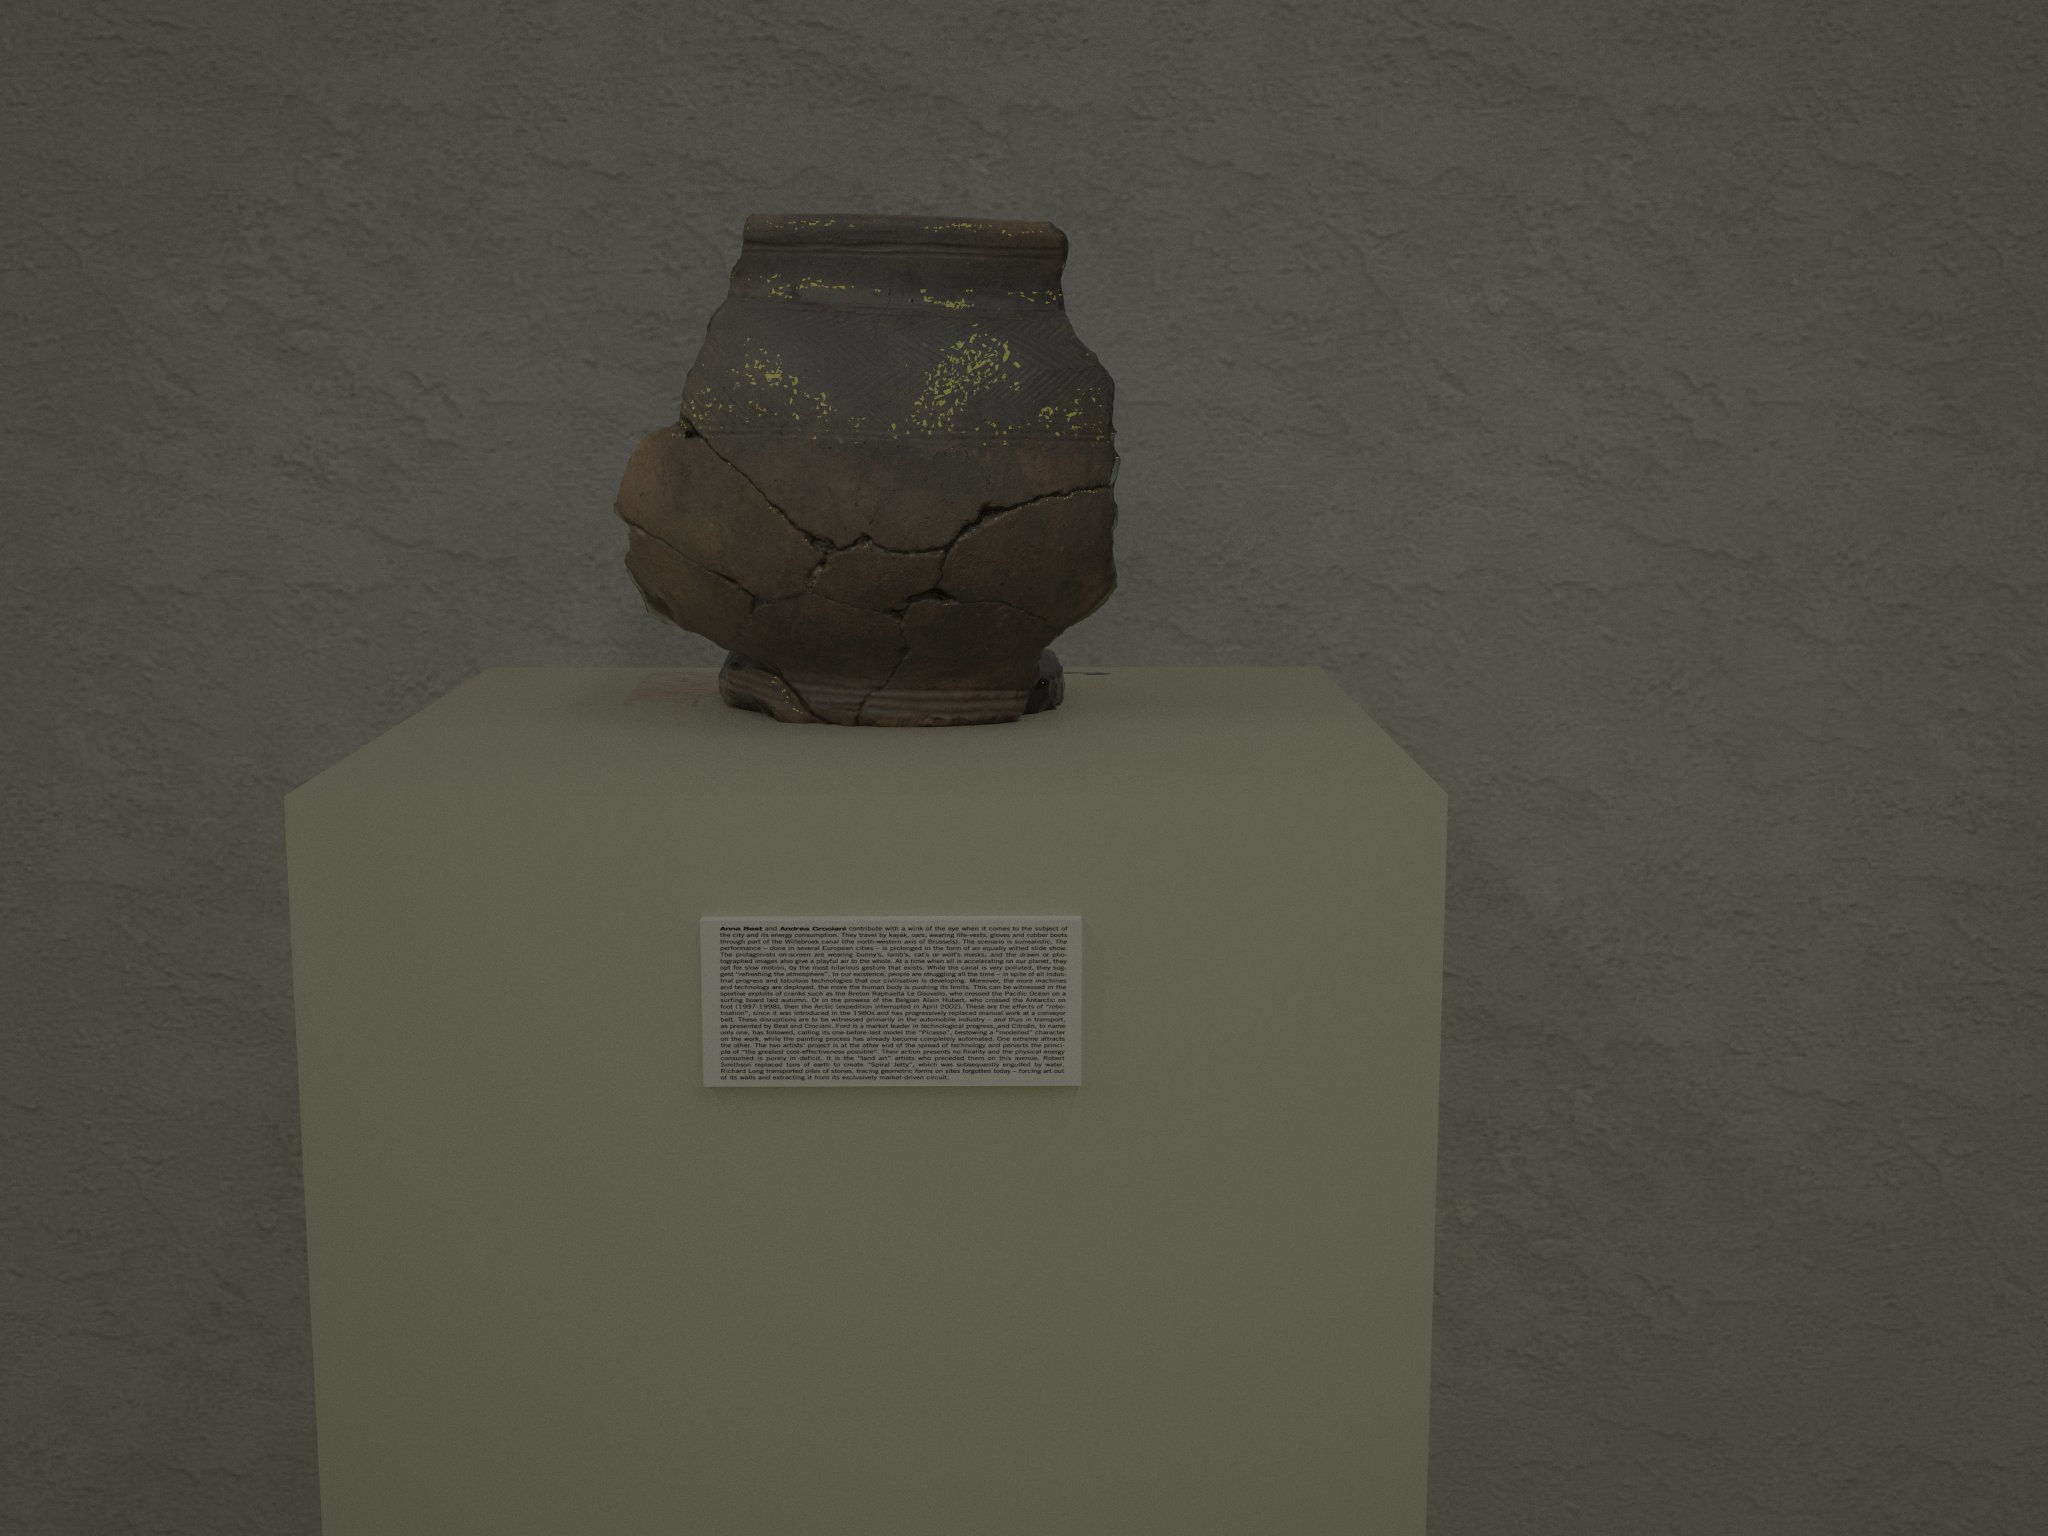 Virtual Museums: Combining 3D Modelling, Photogrammetry and